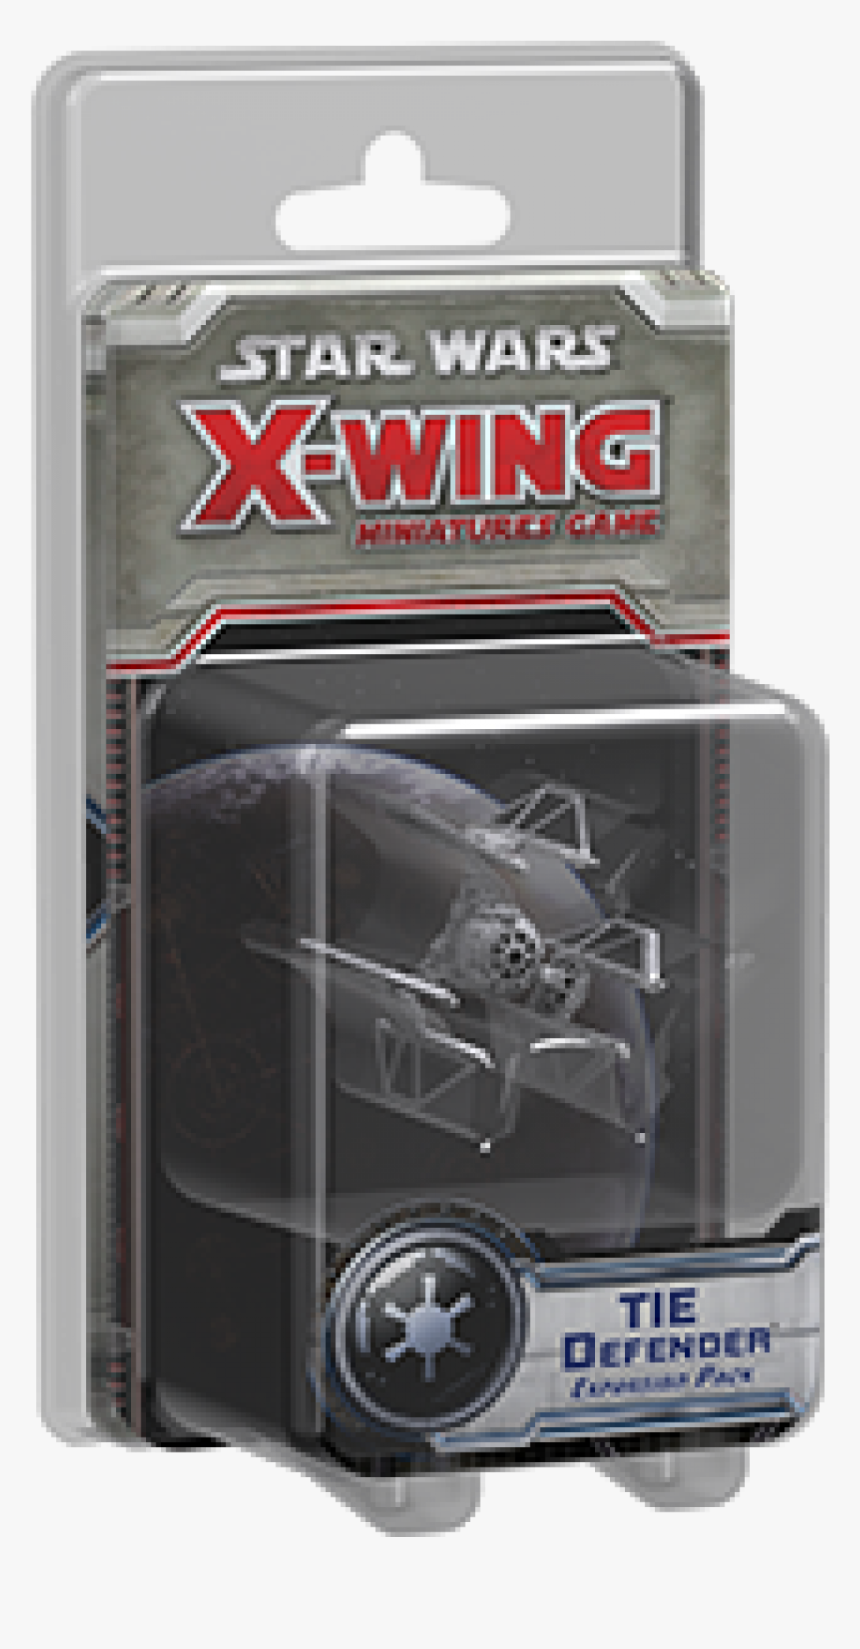 Star Wars X-wing Tie Defender - Star Wars X Wing Z 95 Headhunter Expansion Pack, HD Png Download, Free Download